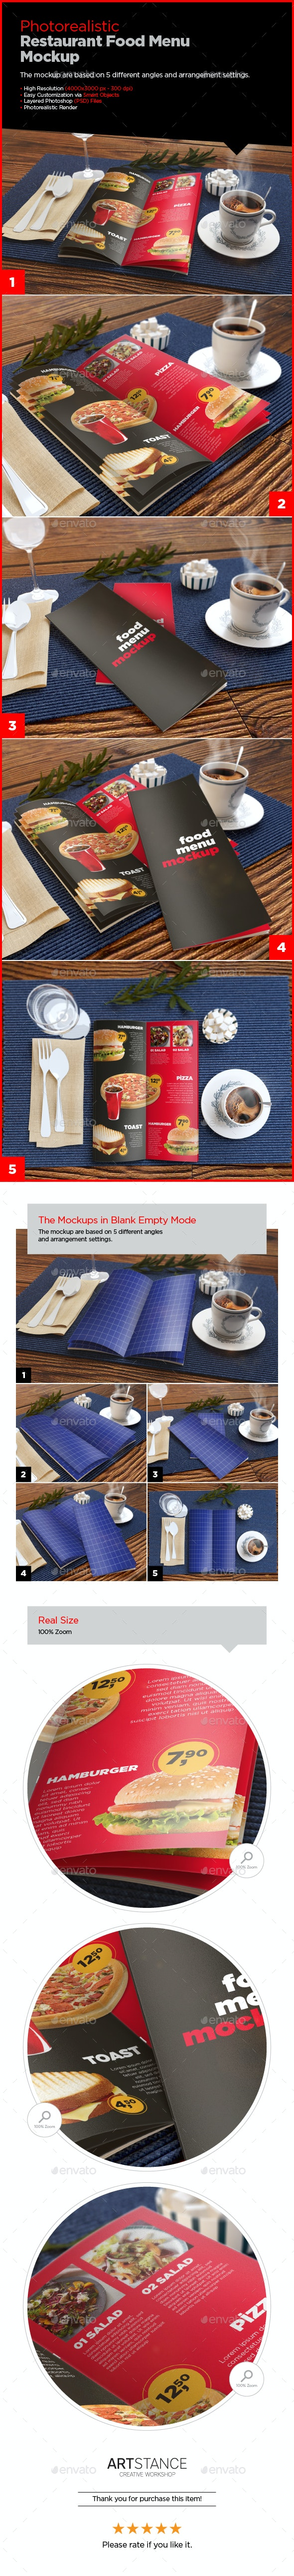 Photorealistic Food Menu Mockup - Print Product Mock-Ups